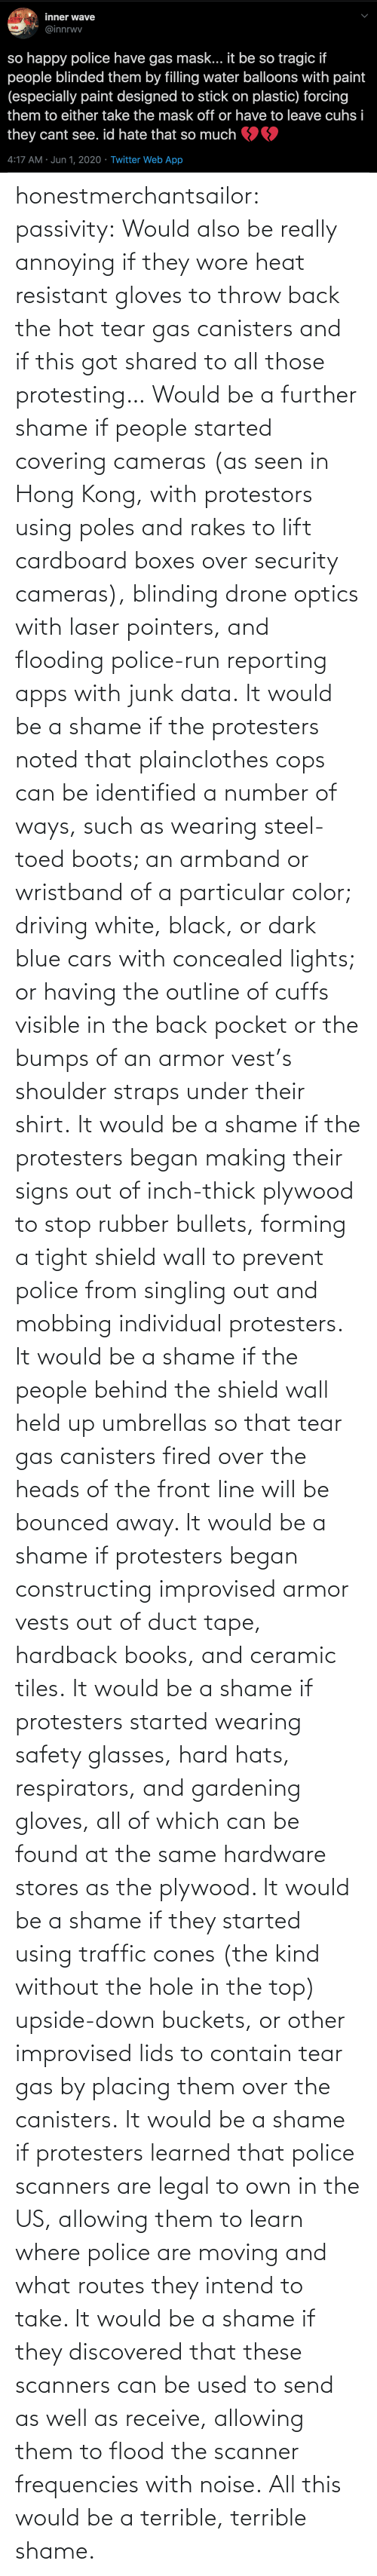 heads: honestmerchantsailor:  passivity: Would also be really annoying if they wore heat resistant gloves to throw back the hot tear gas canisters and if this got shared to all those protesting… Would be a further shame if people started covering cameras (as seen in Hong Kong, with protestors using poles and rakes to lift cardboard boxes over security cameras), blinding drone optics with laser pointers, and flooding police-run reporting apps with junk data. It would be a shame if the protesters noted that plainclothes cops can be identified a number of ways, such as wearing steel-toed boots; an armband or wristband of a particular color; driving white, black, or dark blue cars with concealed lights; or having the outline of cuffs visible in the back pocket or the bumps of an armor vest's shoulder straps under their shirt. It would be a shame if the protesters began making their signs out of inch-thick plywood to stop rubber bullets, forming a tight shield wall to prevent police from singling out and mobbing individual protesters. It would be a shame if the people behind the shield wall held up umbrellas so that tear gas canisters fired over the heads of the front line will be bounced away. It would be a shame if protesters began constructing improvised armor vests out of duct tape, hardback books, and ceramic tiles. It would be a shame if protesters started wearing safety glasses, hard hats, respirators, and gardening gloves, all of which can be found at the same hardware stores as the plywood. It would be a shame if they started using traffic cones (the kind without the hole in the top) upside-down buckets, or other improvised lids to contain tear gas by placing them over the canisters. It would be a shame if protesters learned that police scanners are legal to own in the US, allowing them to learn where police are moving and what routes they intend to take. It would be a shame if they discovered that these scanners can be used to send as well as receive, allowing them to flood the scanner frequencies with noise. All this would be a terrible, terrible shame.